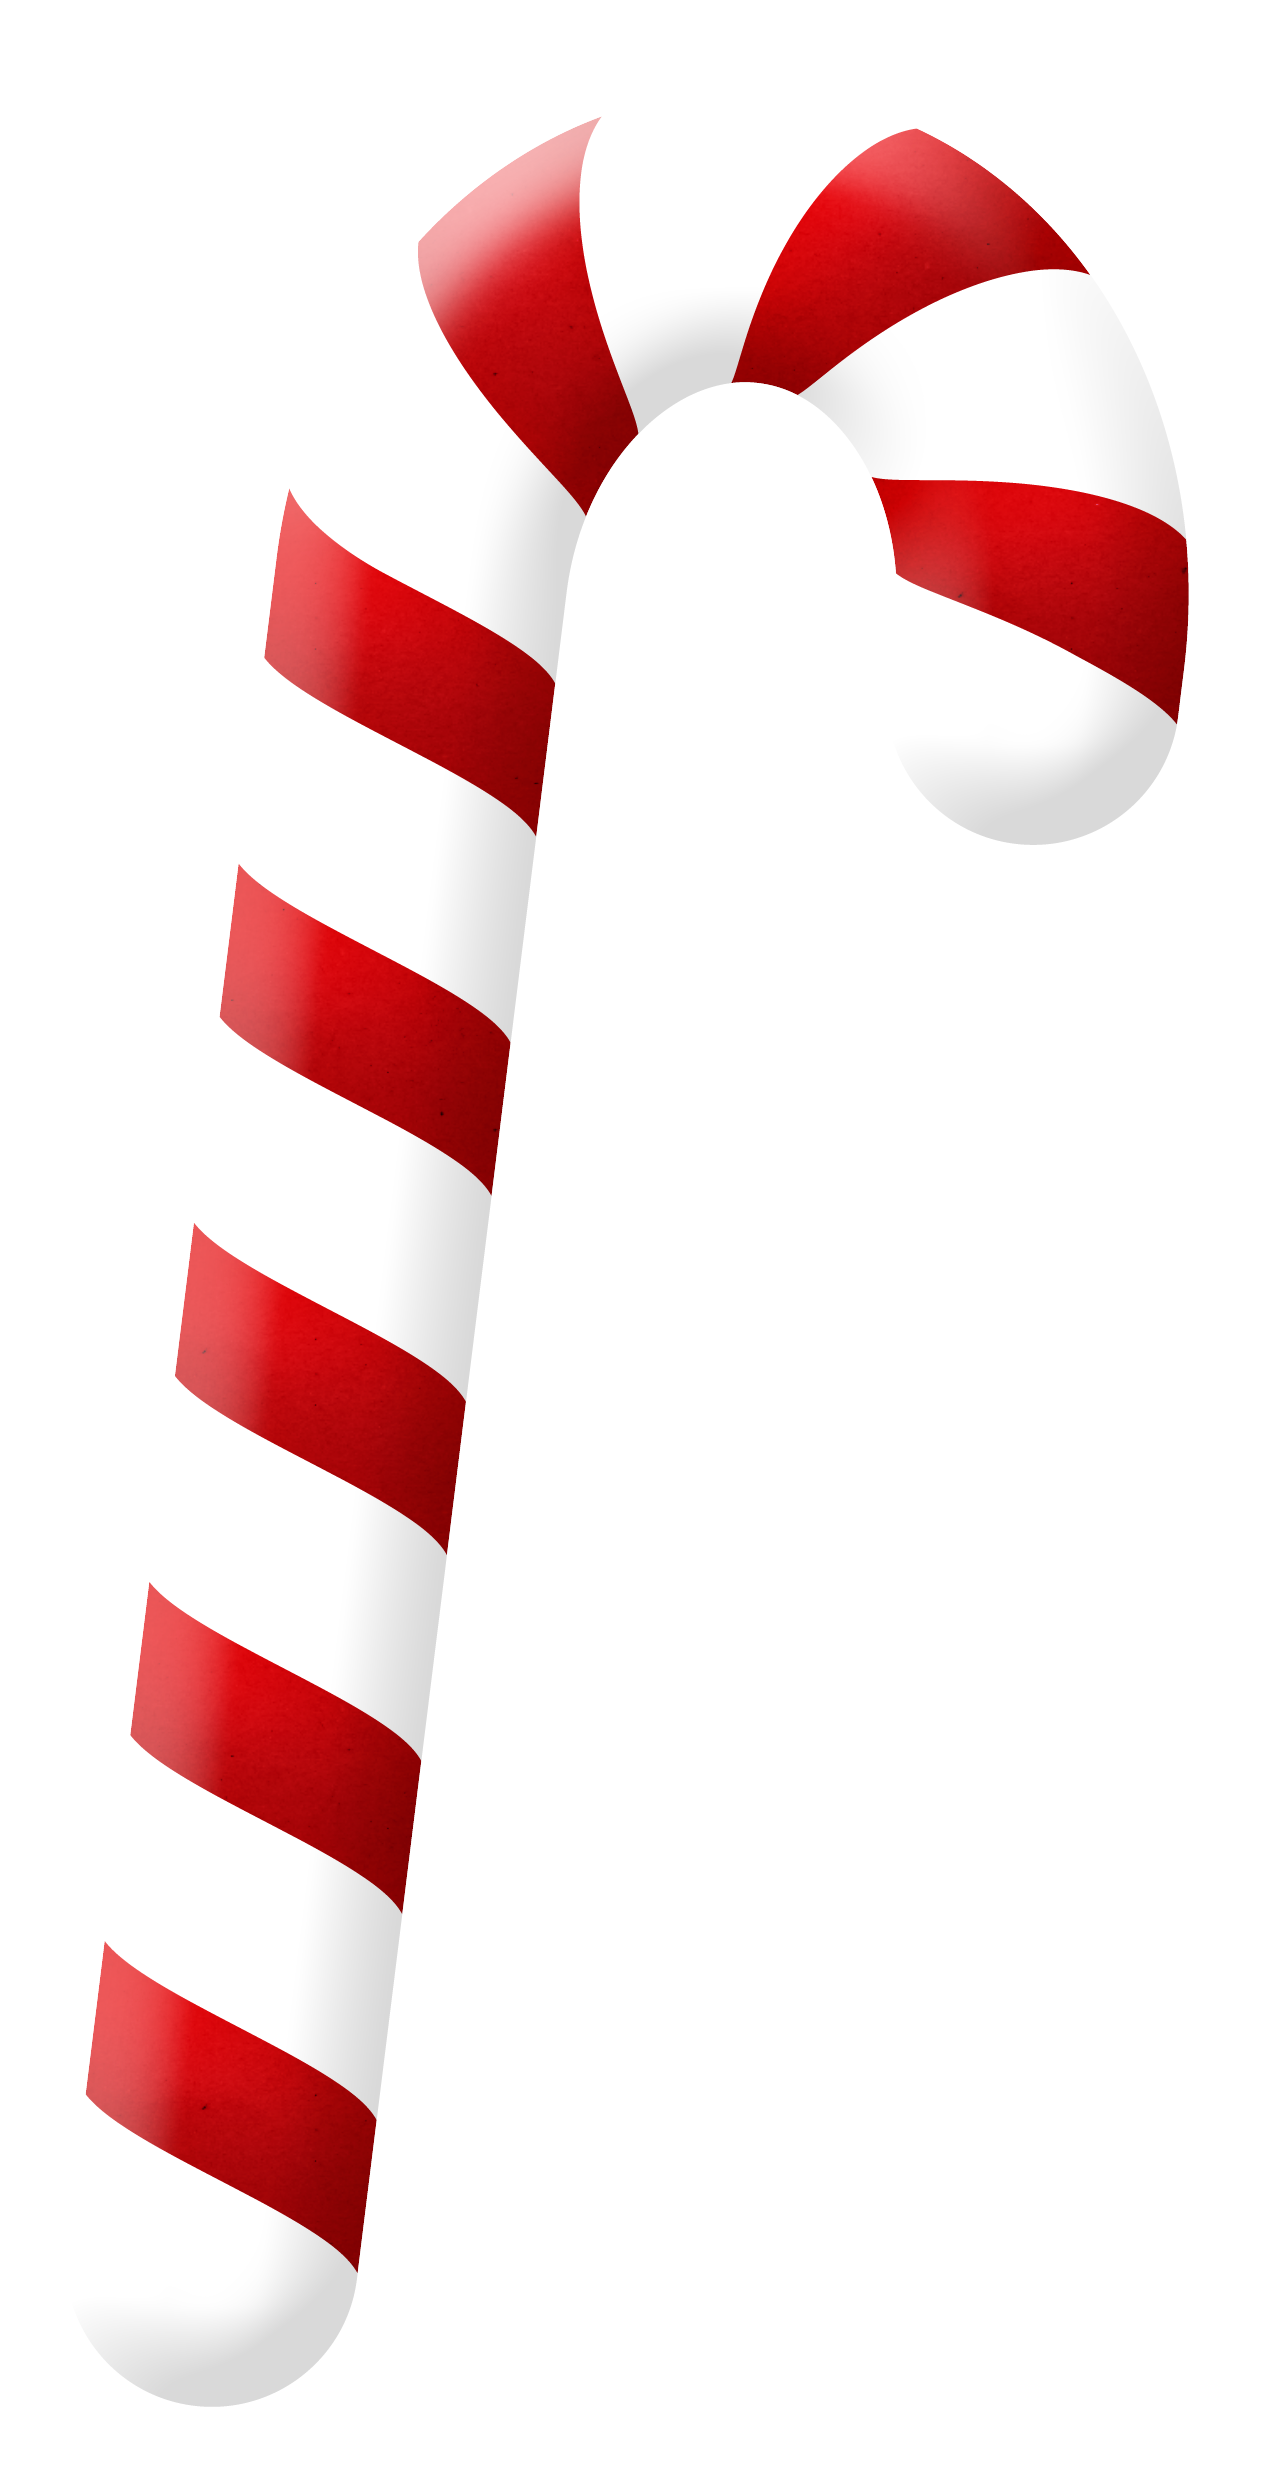 Mailbox clipart north pole. Christmas candy cane clip